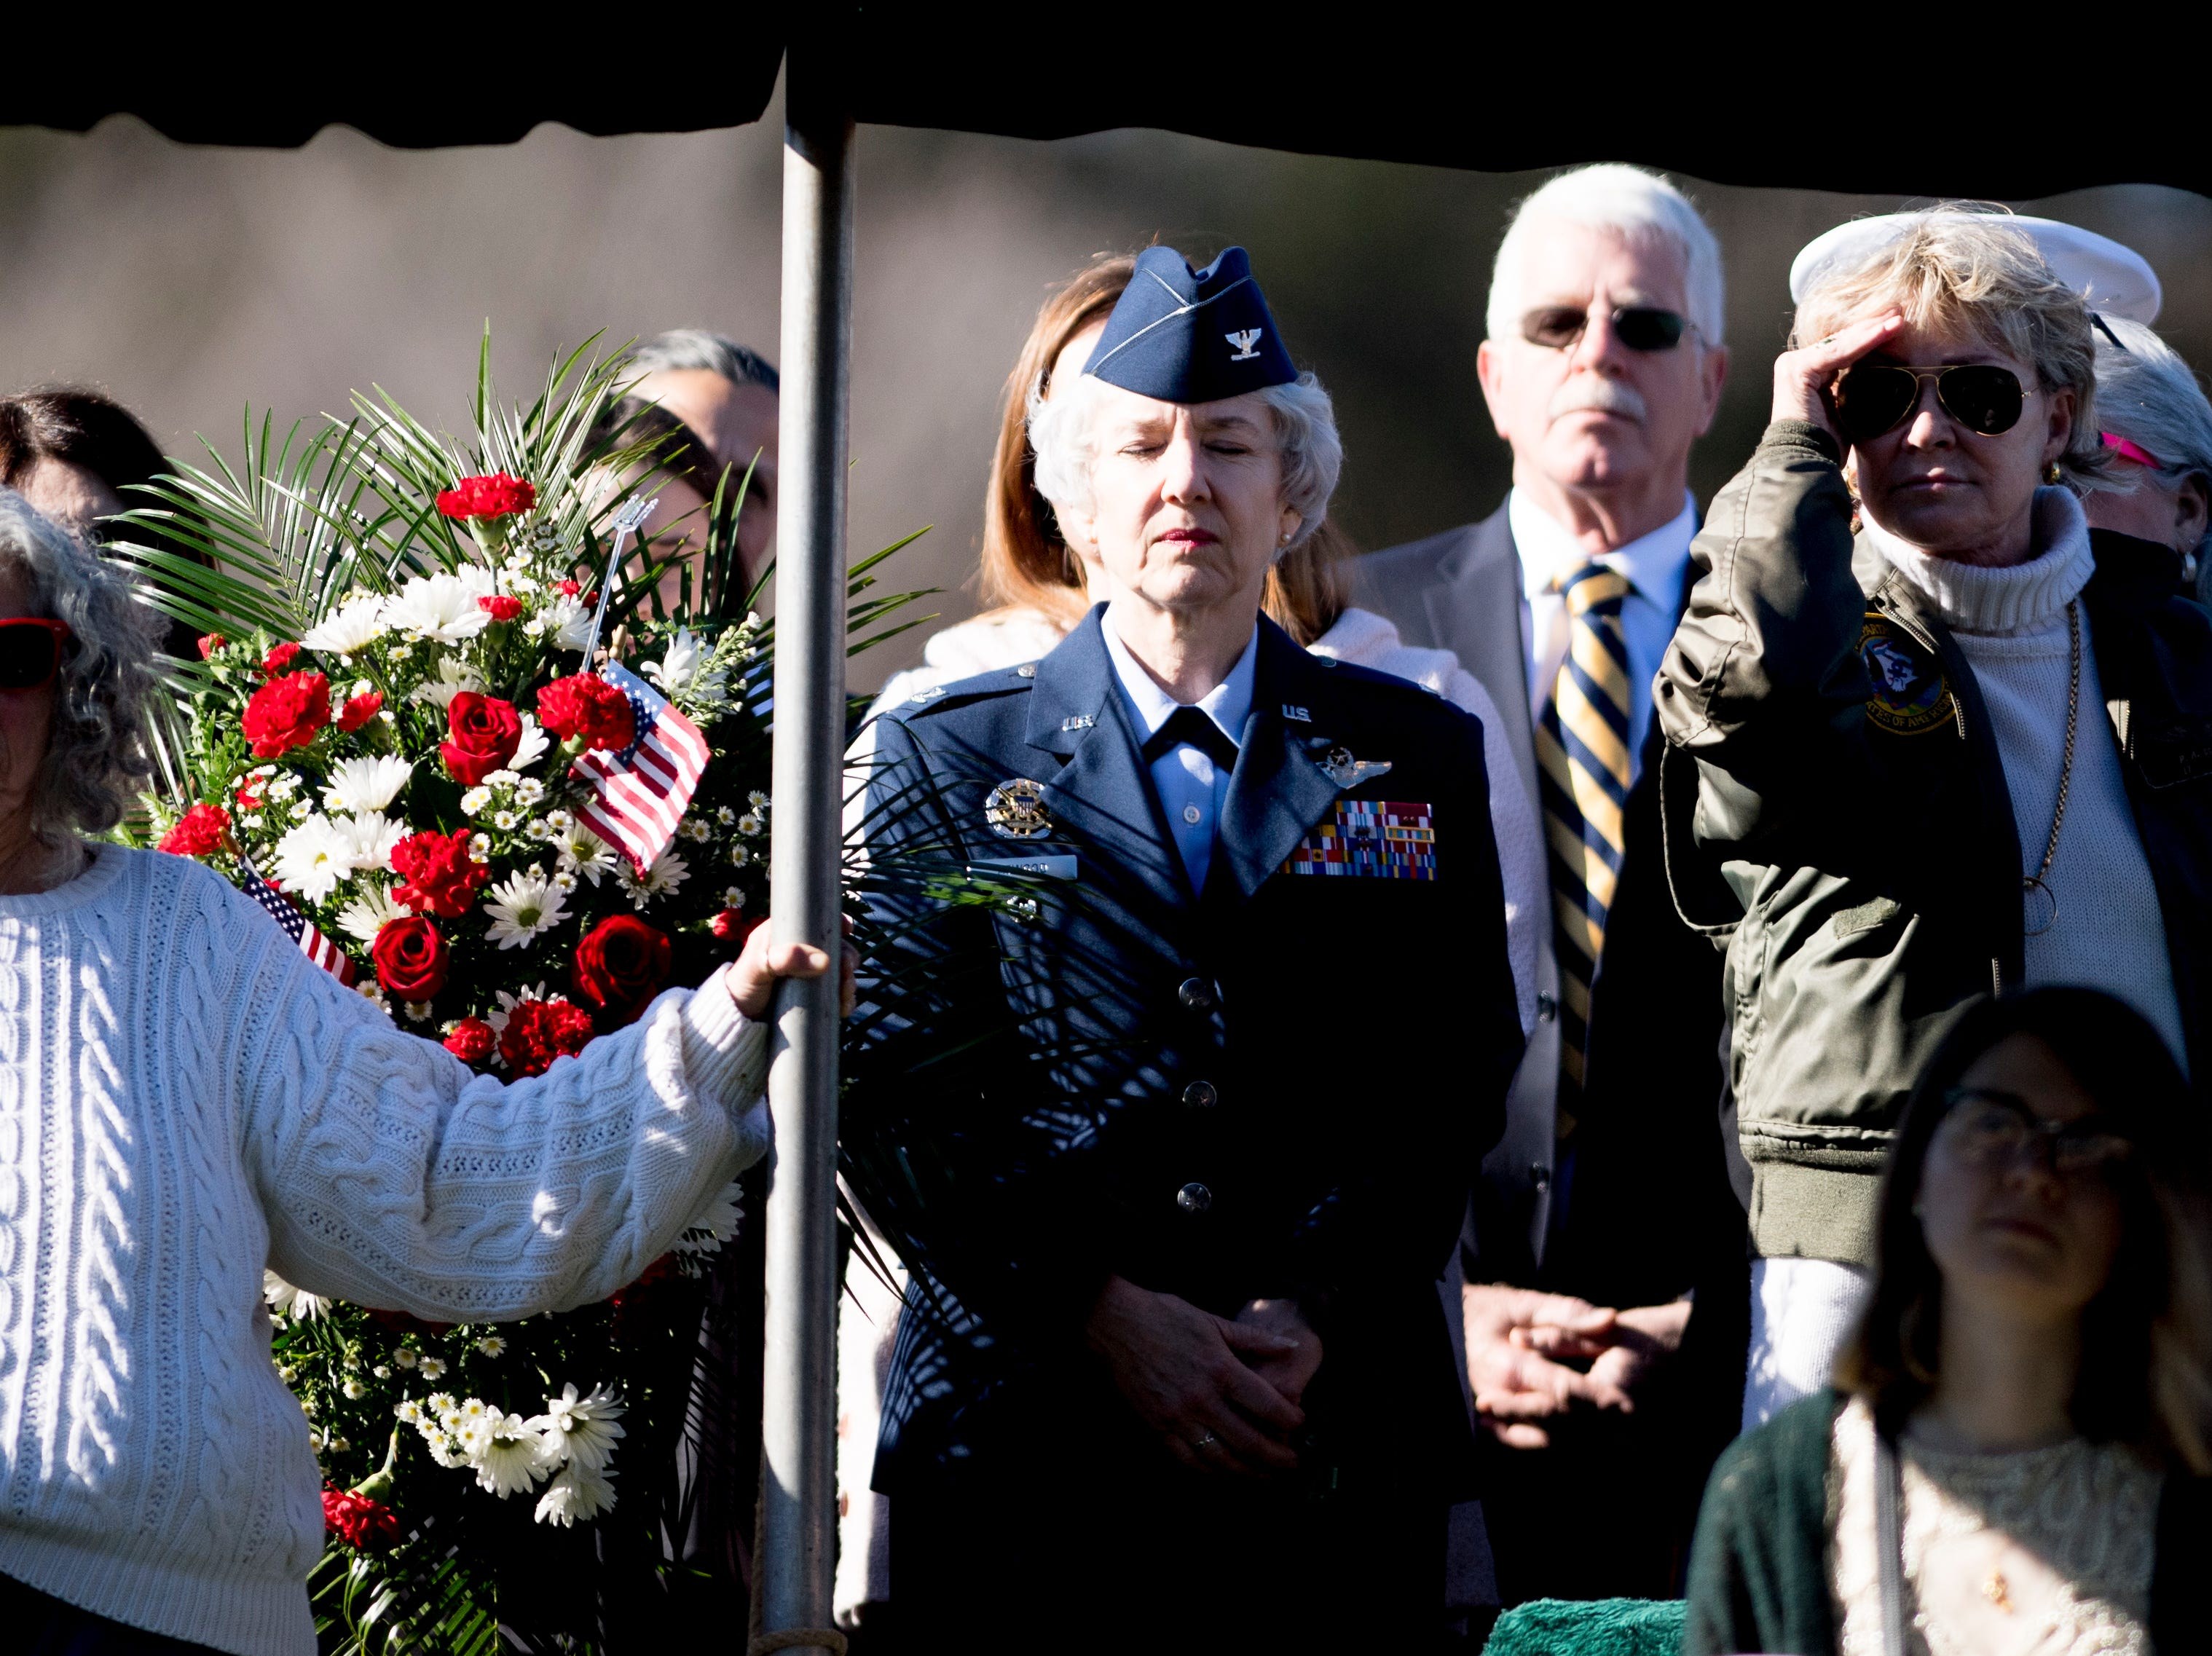 Loved ones and veterans attend a graveside service for Rosemary Mariner, the US Navy's first female fighter pilot, at New Loyston Cemetery in Maynardville, Tennessee on Saturday, February 2, 2019. Mariner died January 24th of cancer.